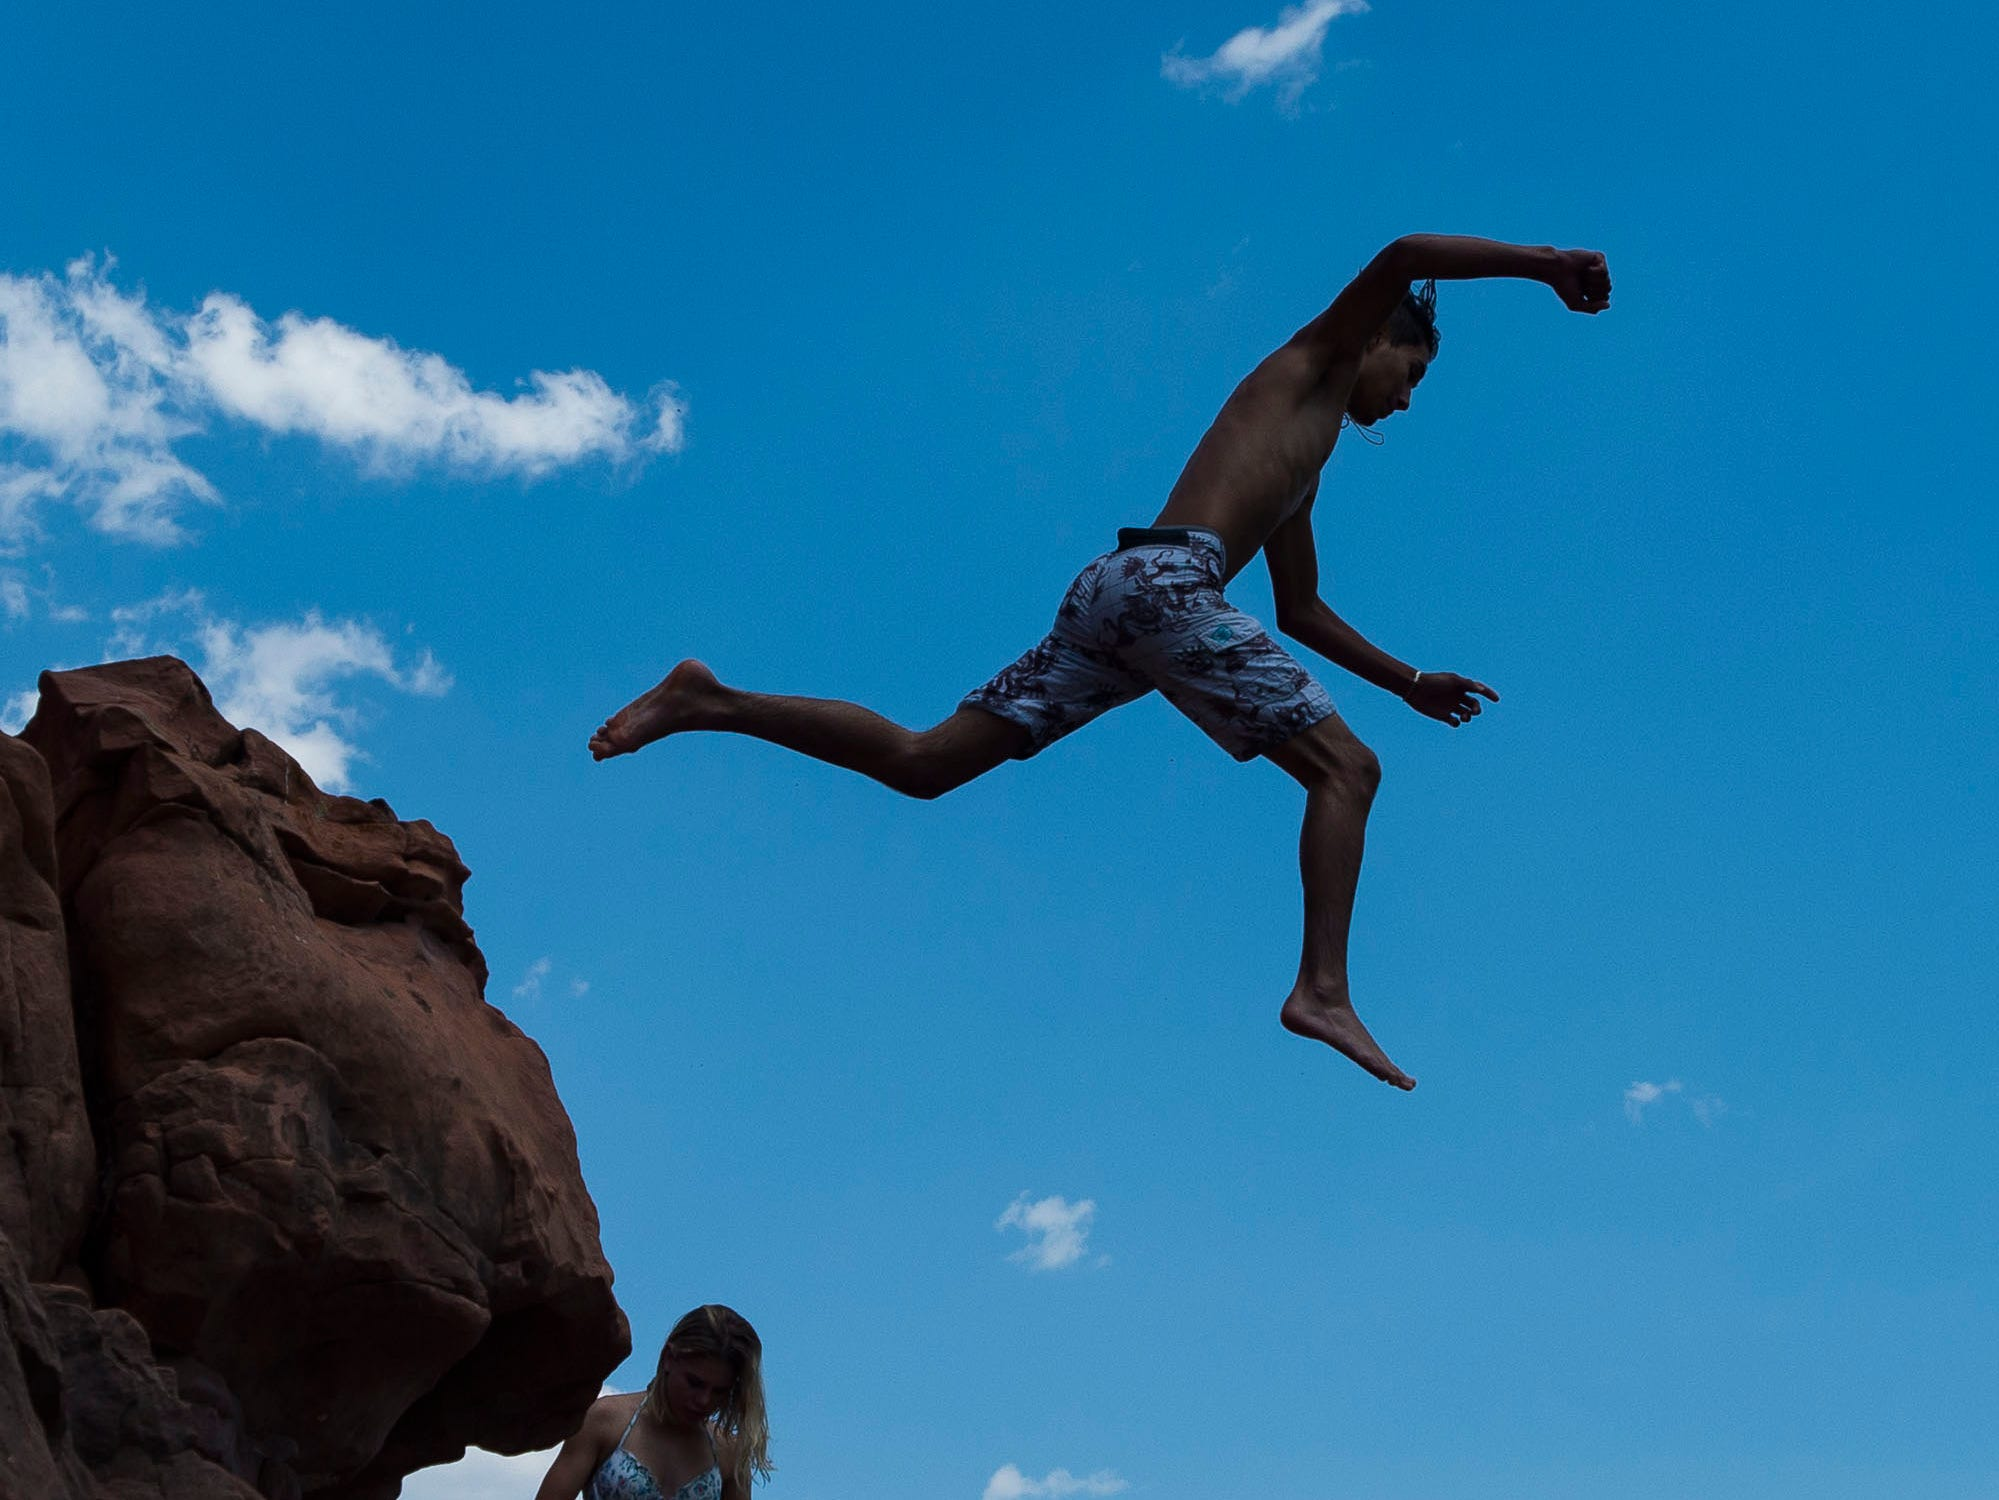 Emilio Salazar, 17, jumps off the rocky cliffside into the water while hanging out with friends on Wednesday, July 18, 2018, at Horsetooth Reservoir in Fort Collins, Colo.